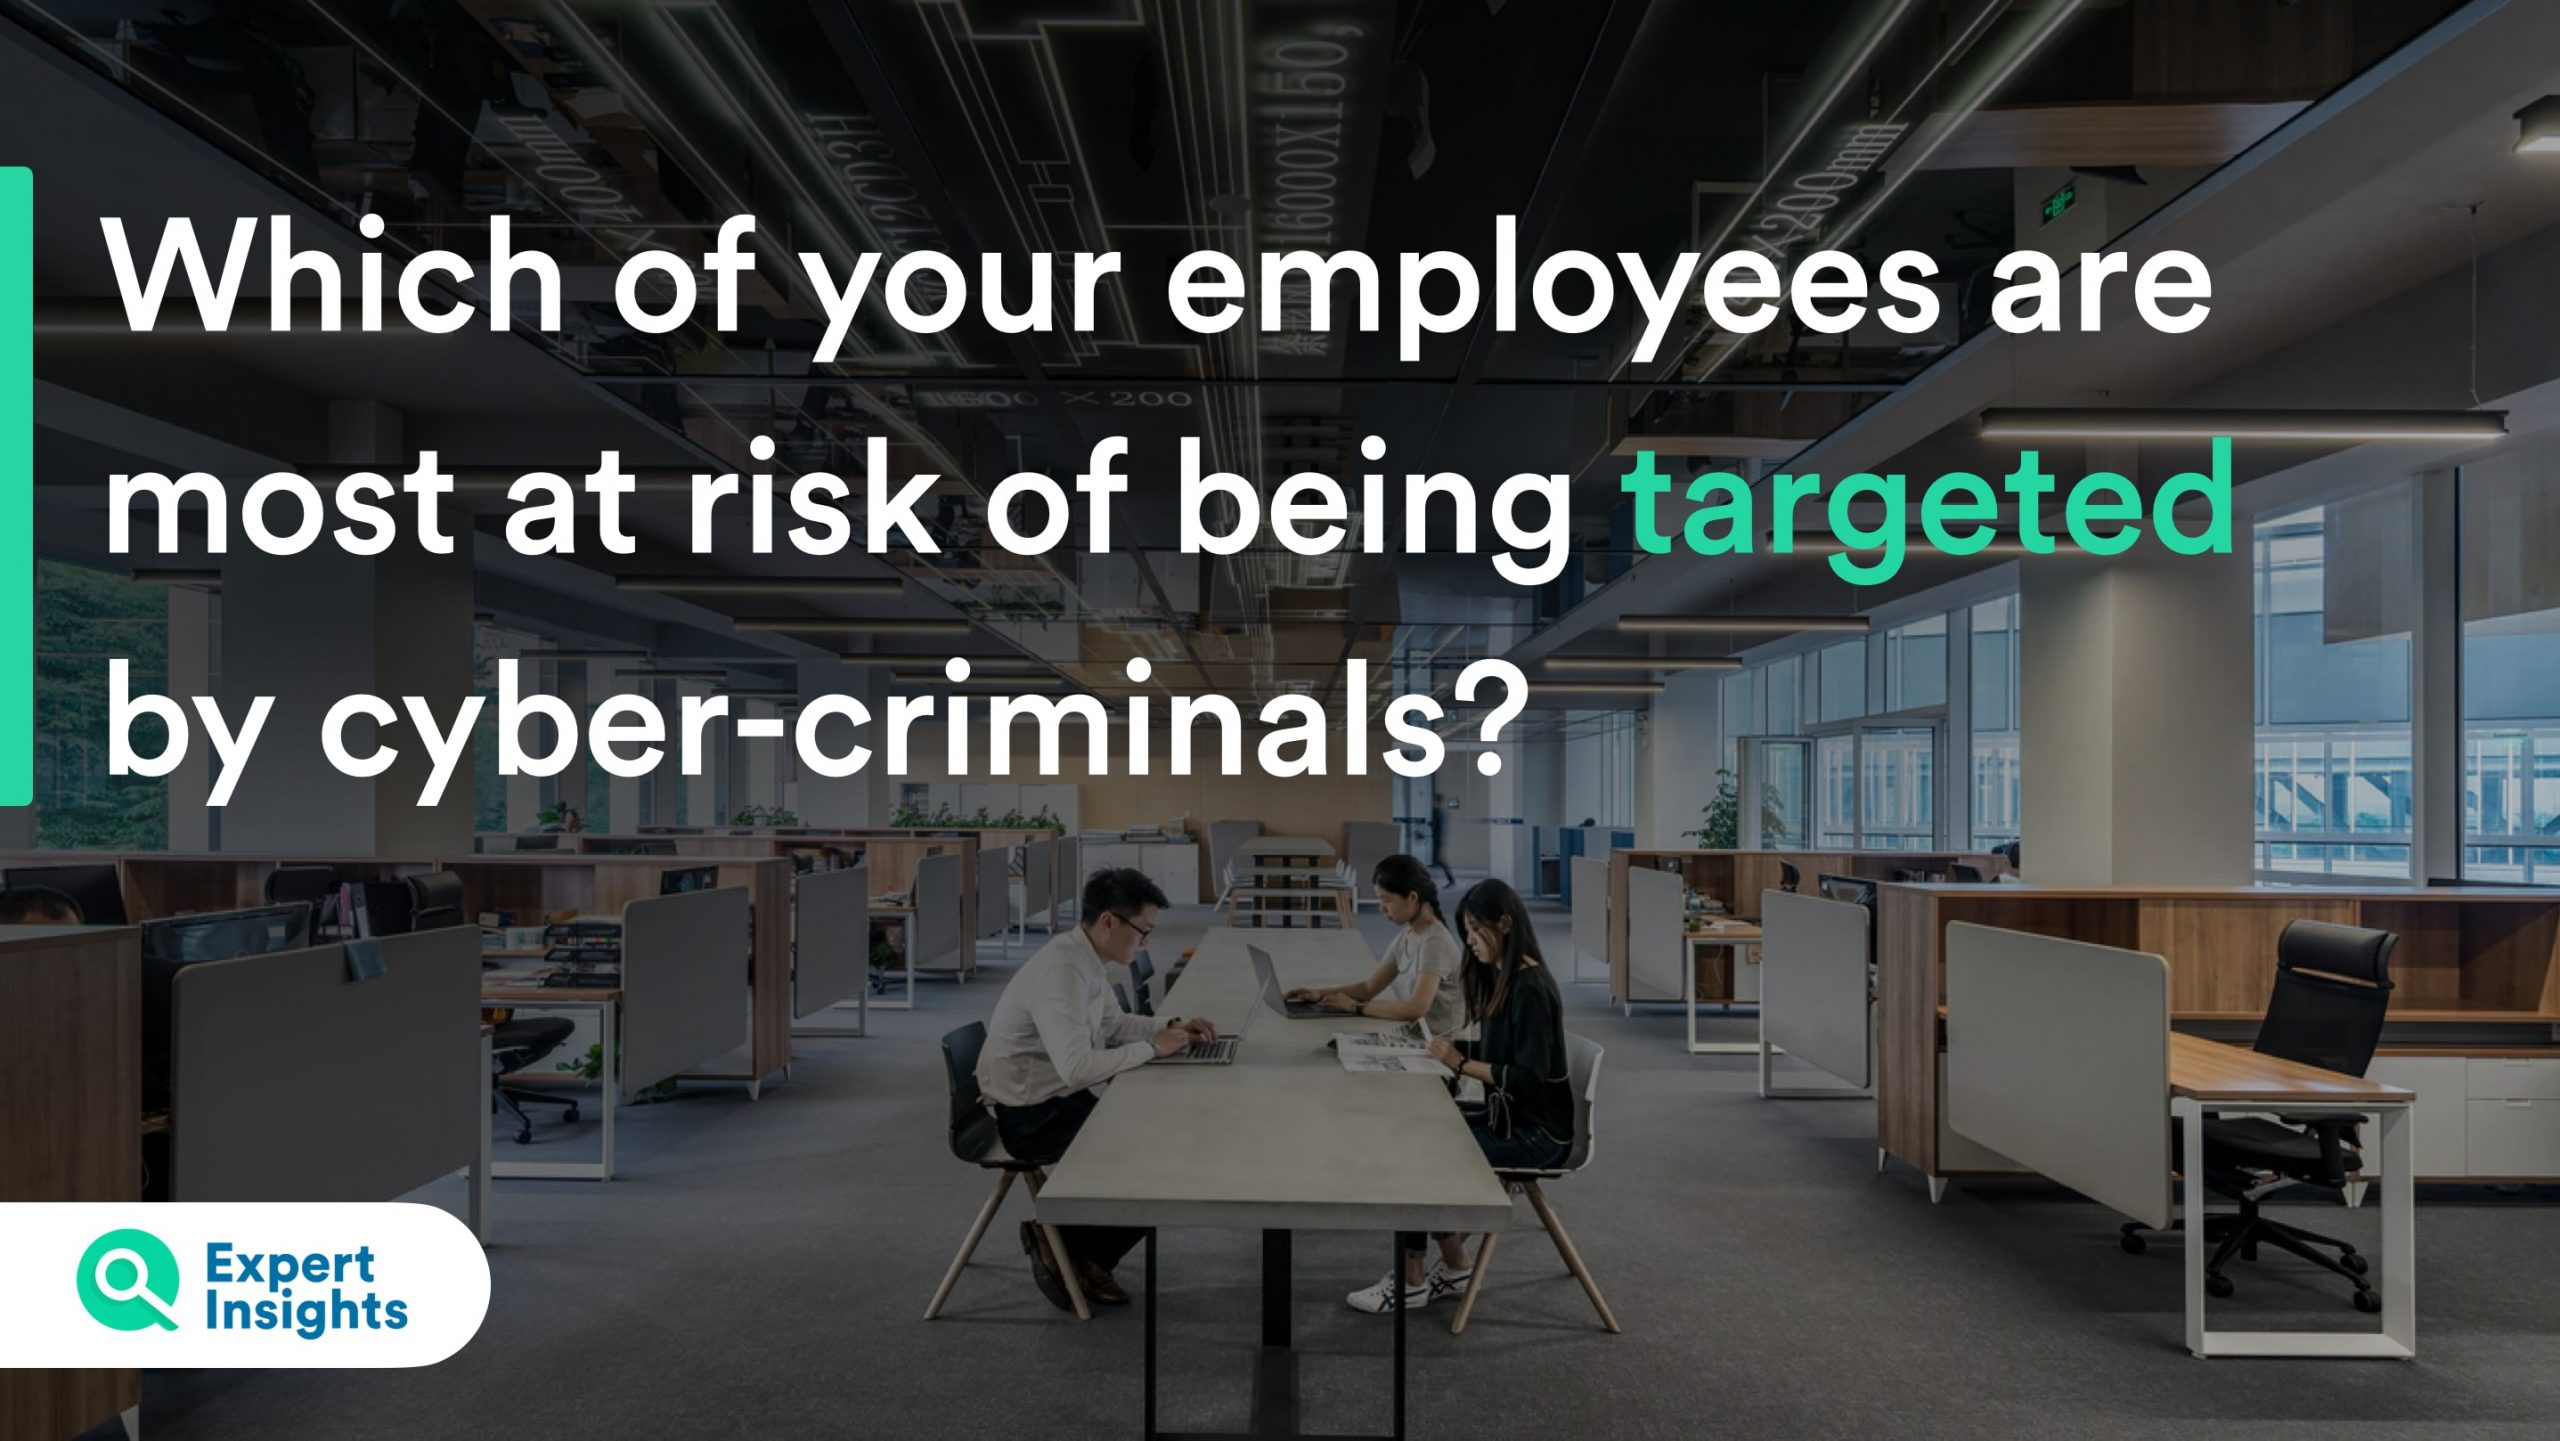 Which of your employees are most at risk of being targeted by cyber-criminals?